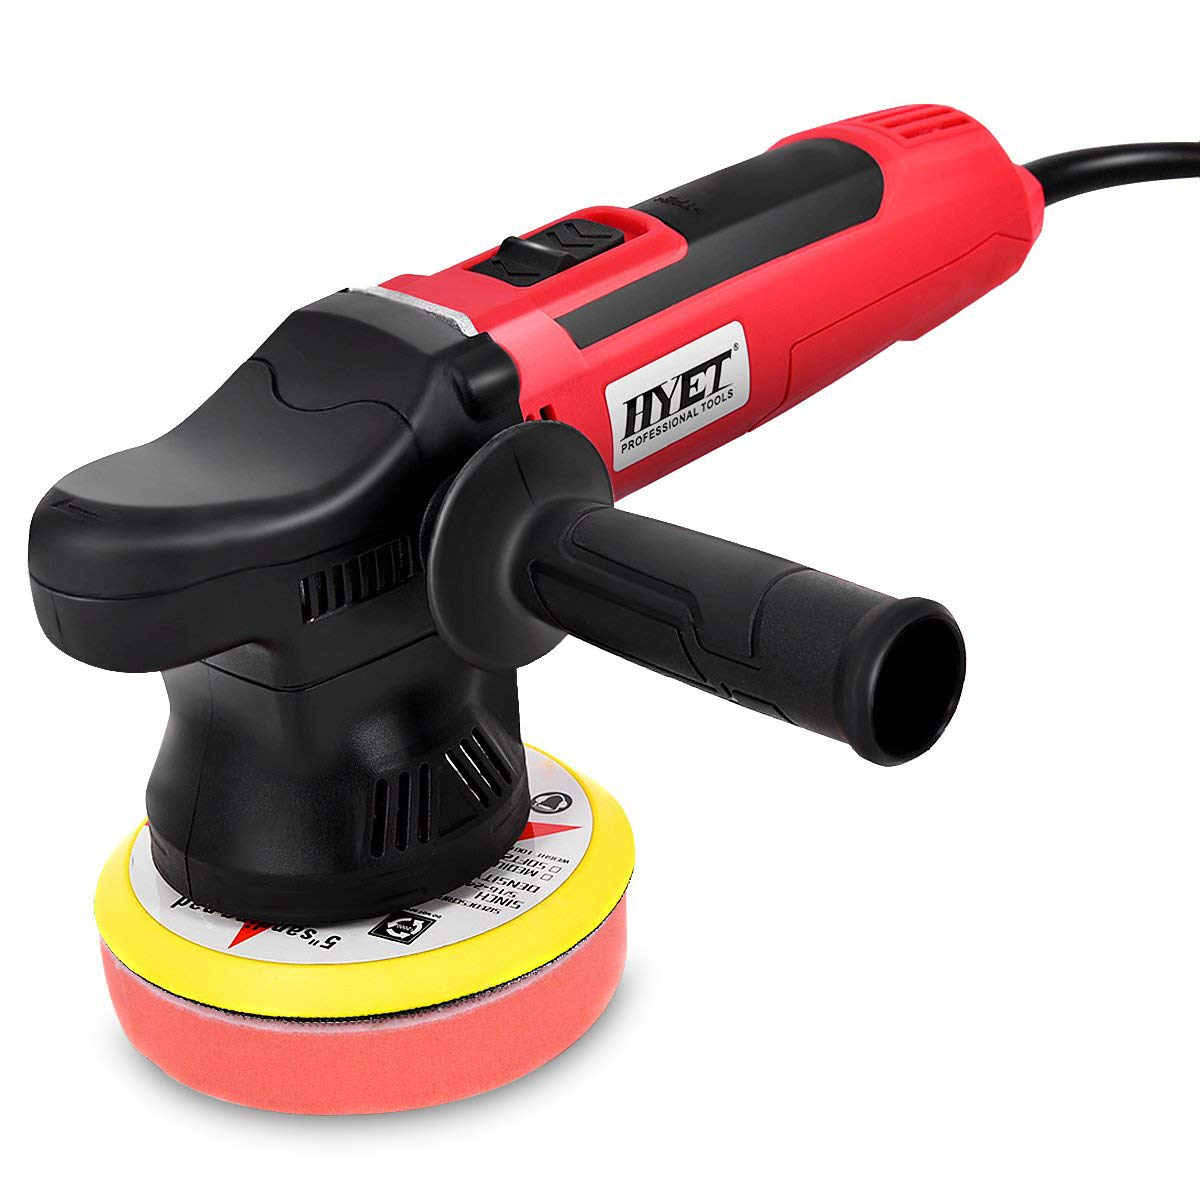 Goplus Random Orbital Sander Variable Speed Polisher Electrical Dual-Action Polisher Grinder Buffer 5 inch